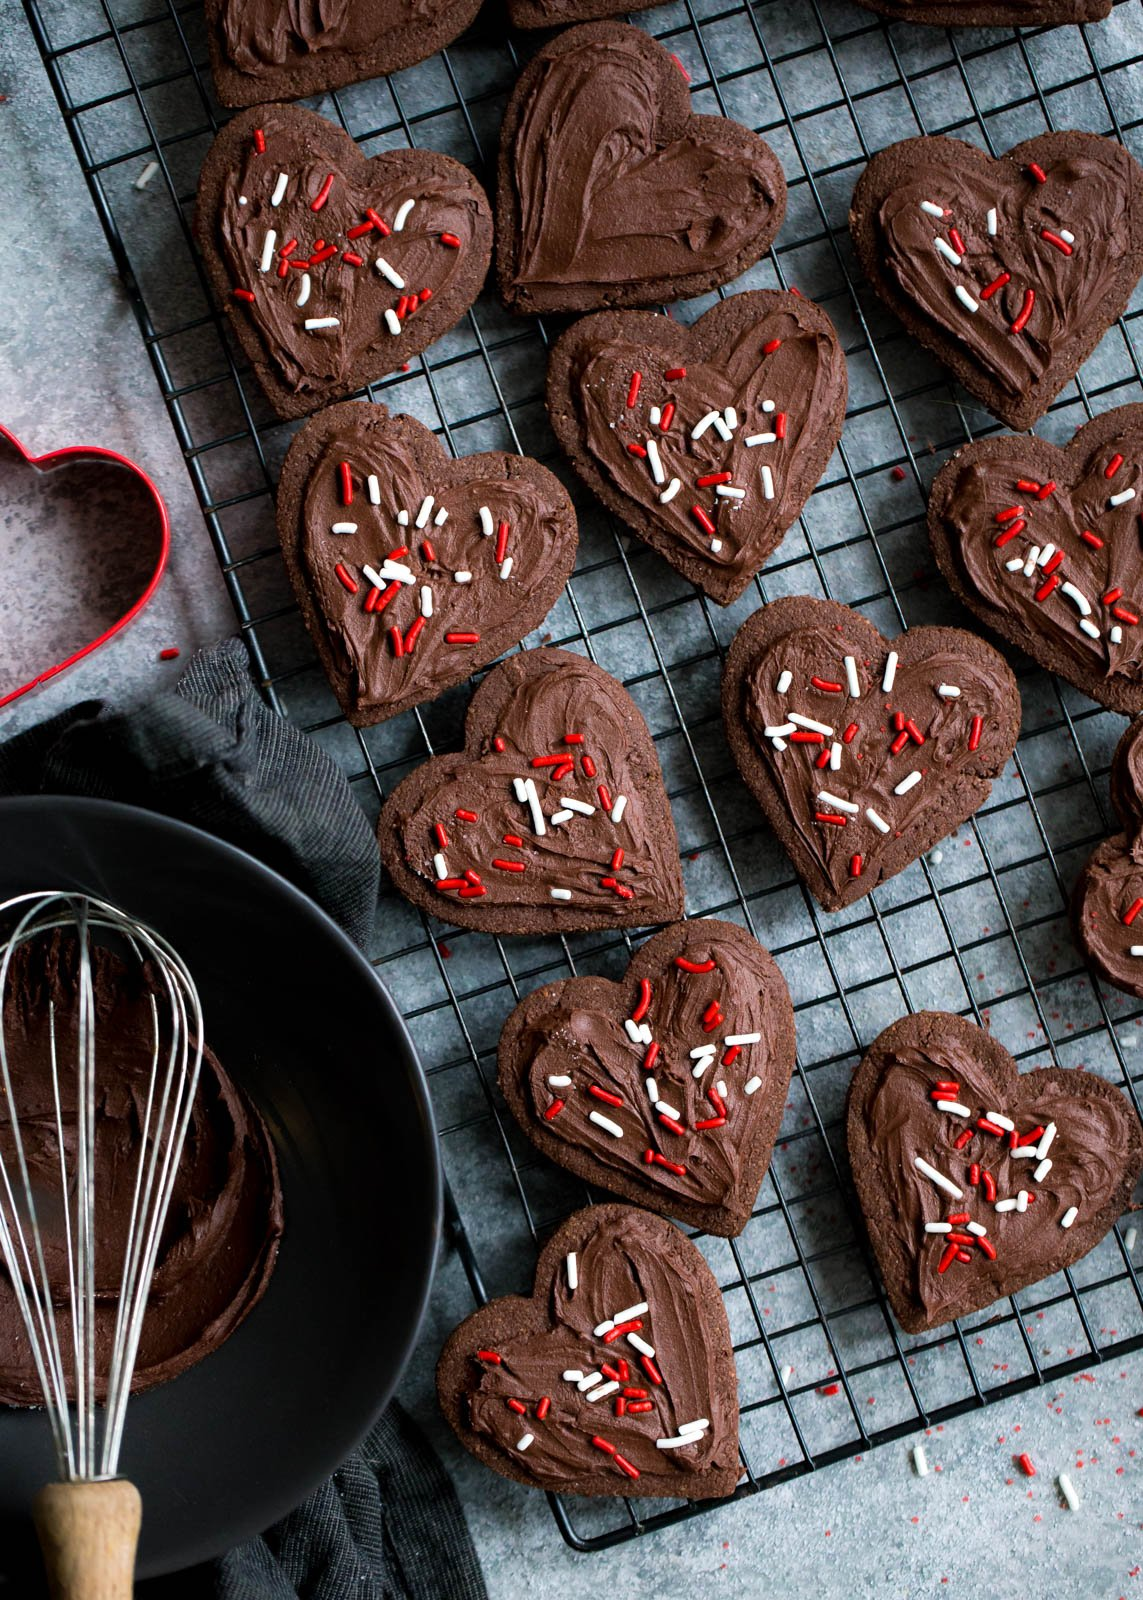 Heart shaped chocolate cookies with red and white sprinkles